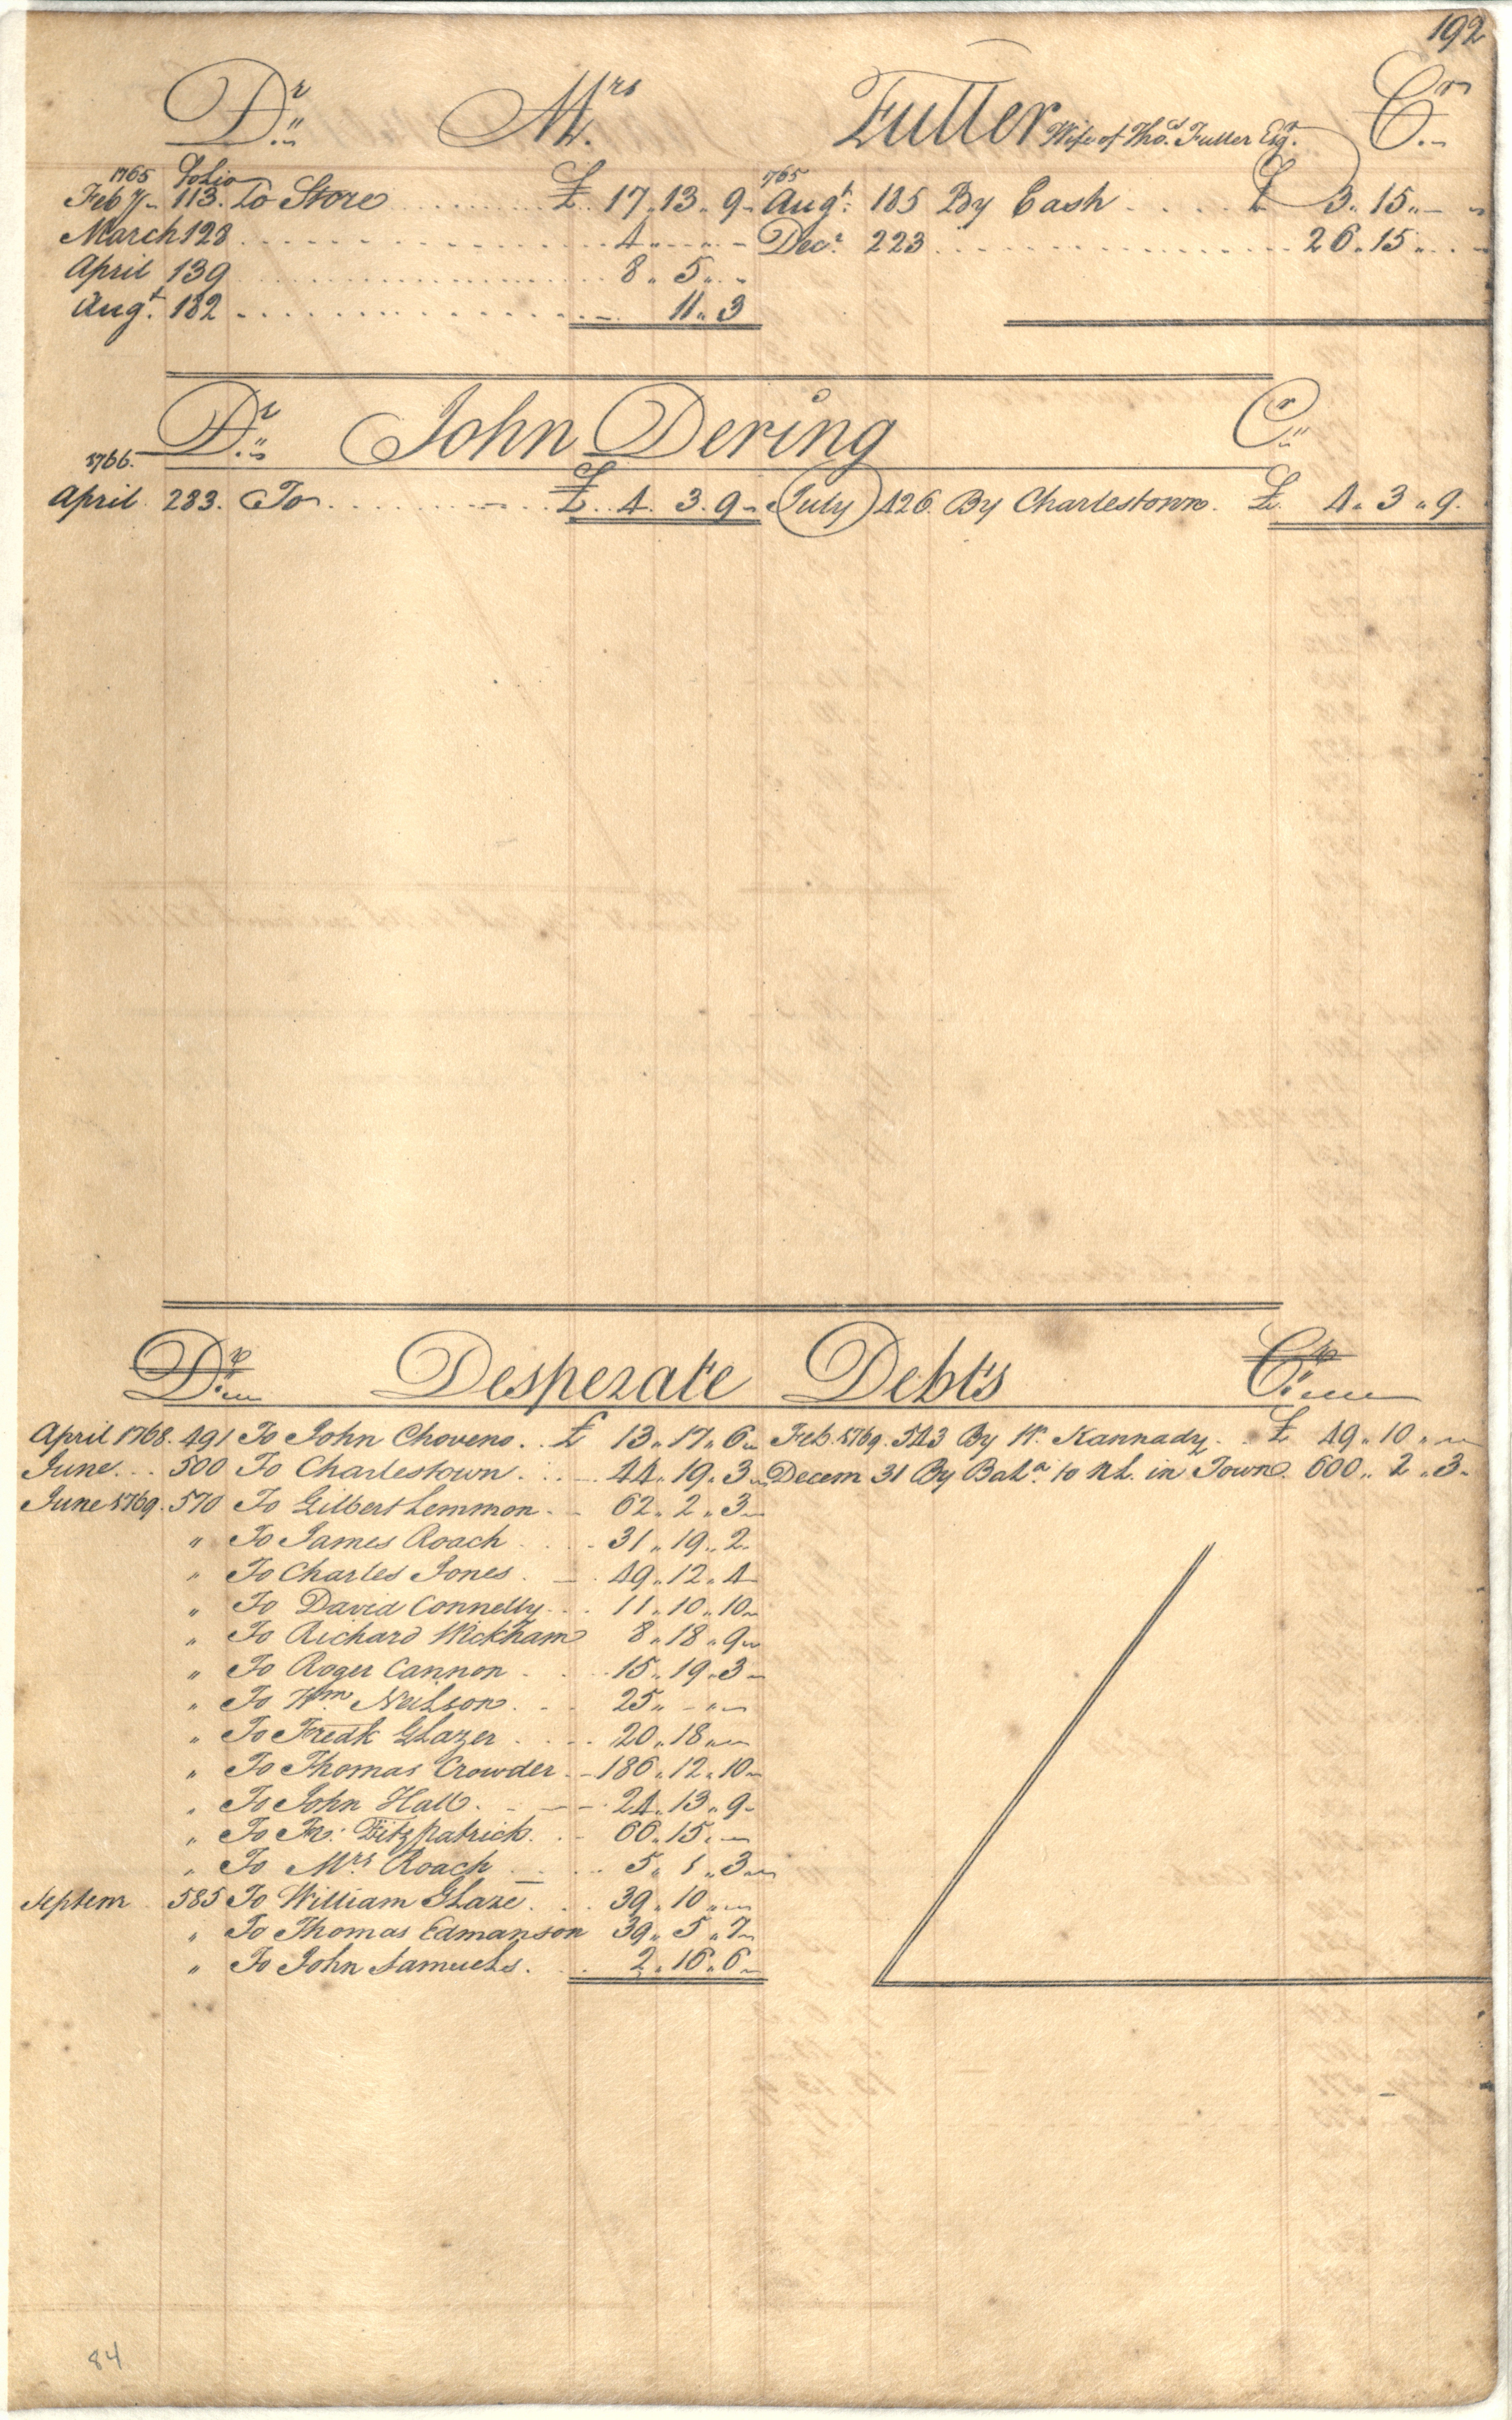 Plowden Weston's Business Ledger, page 192